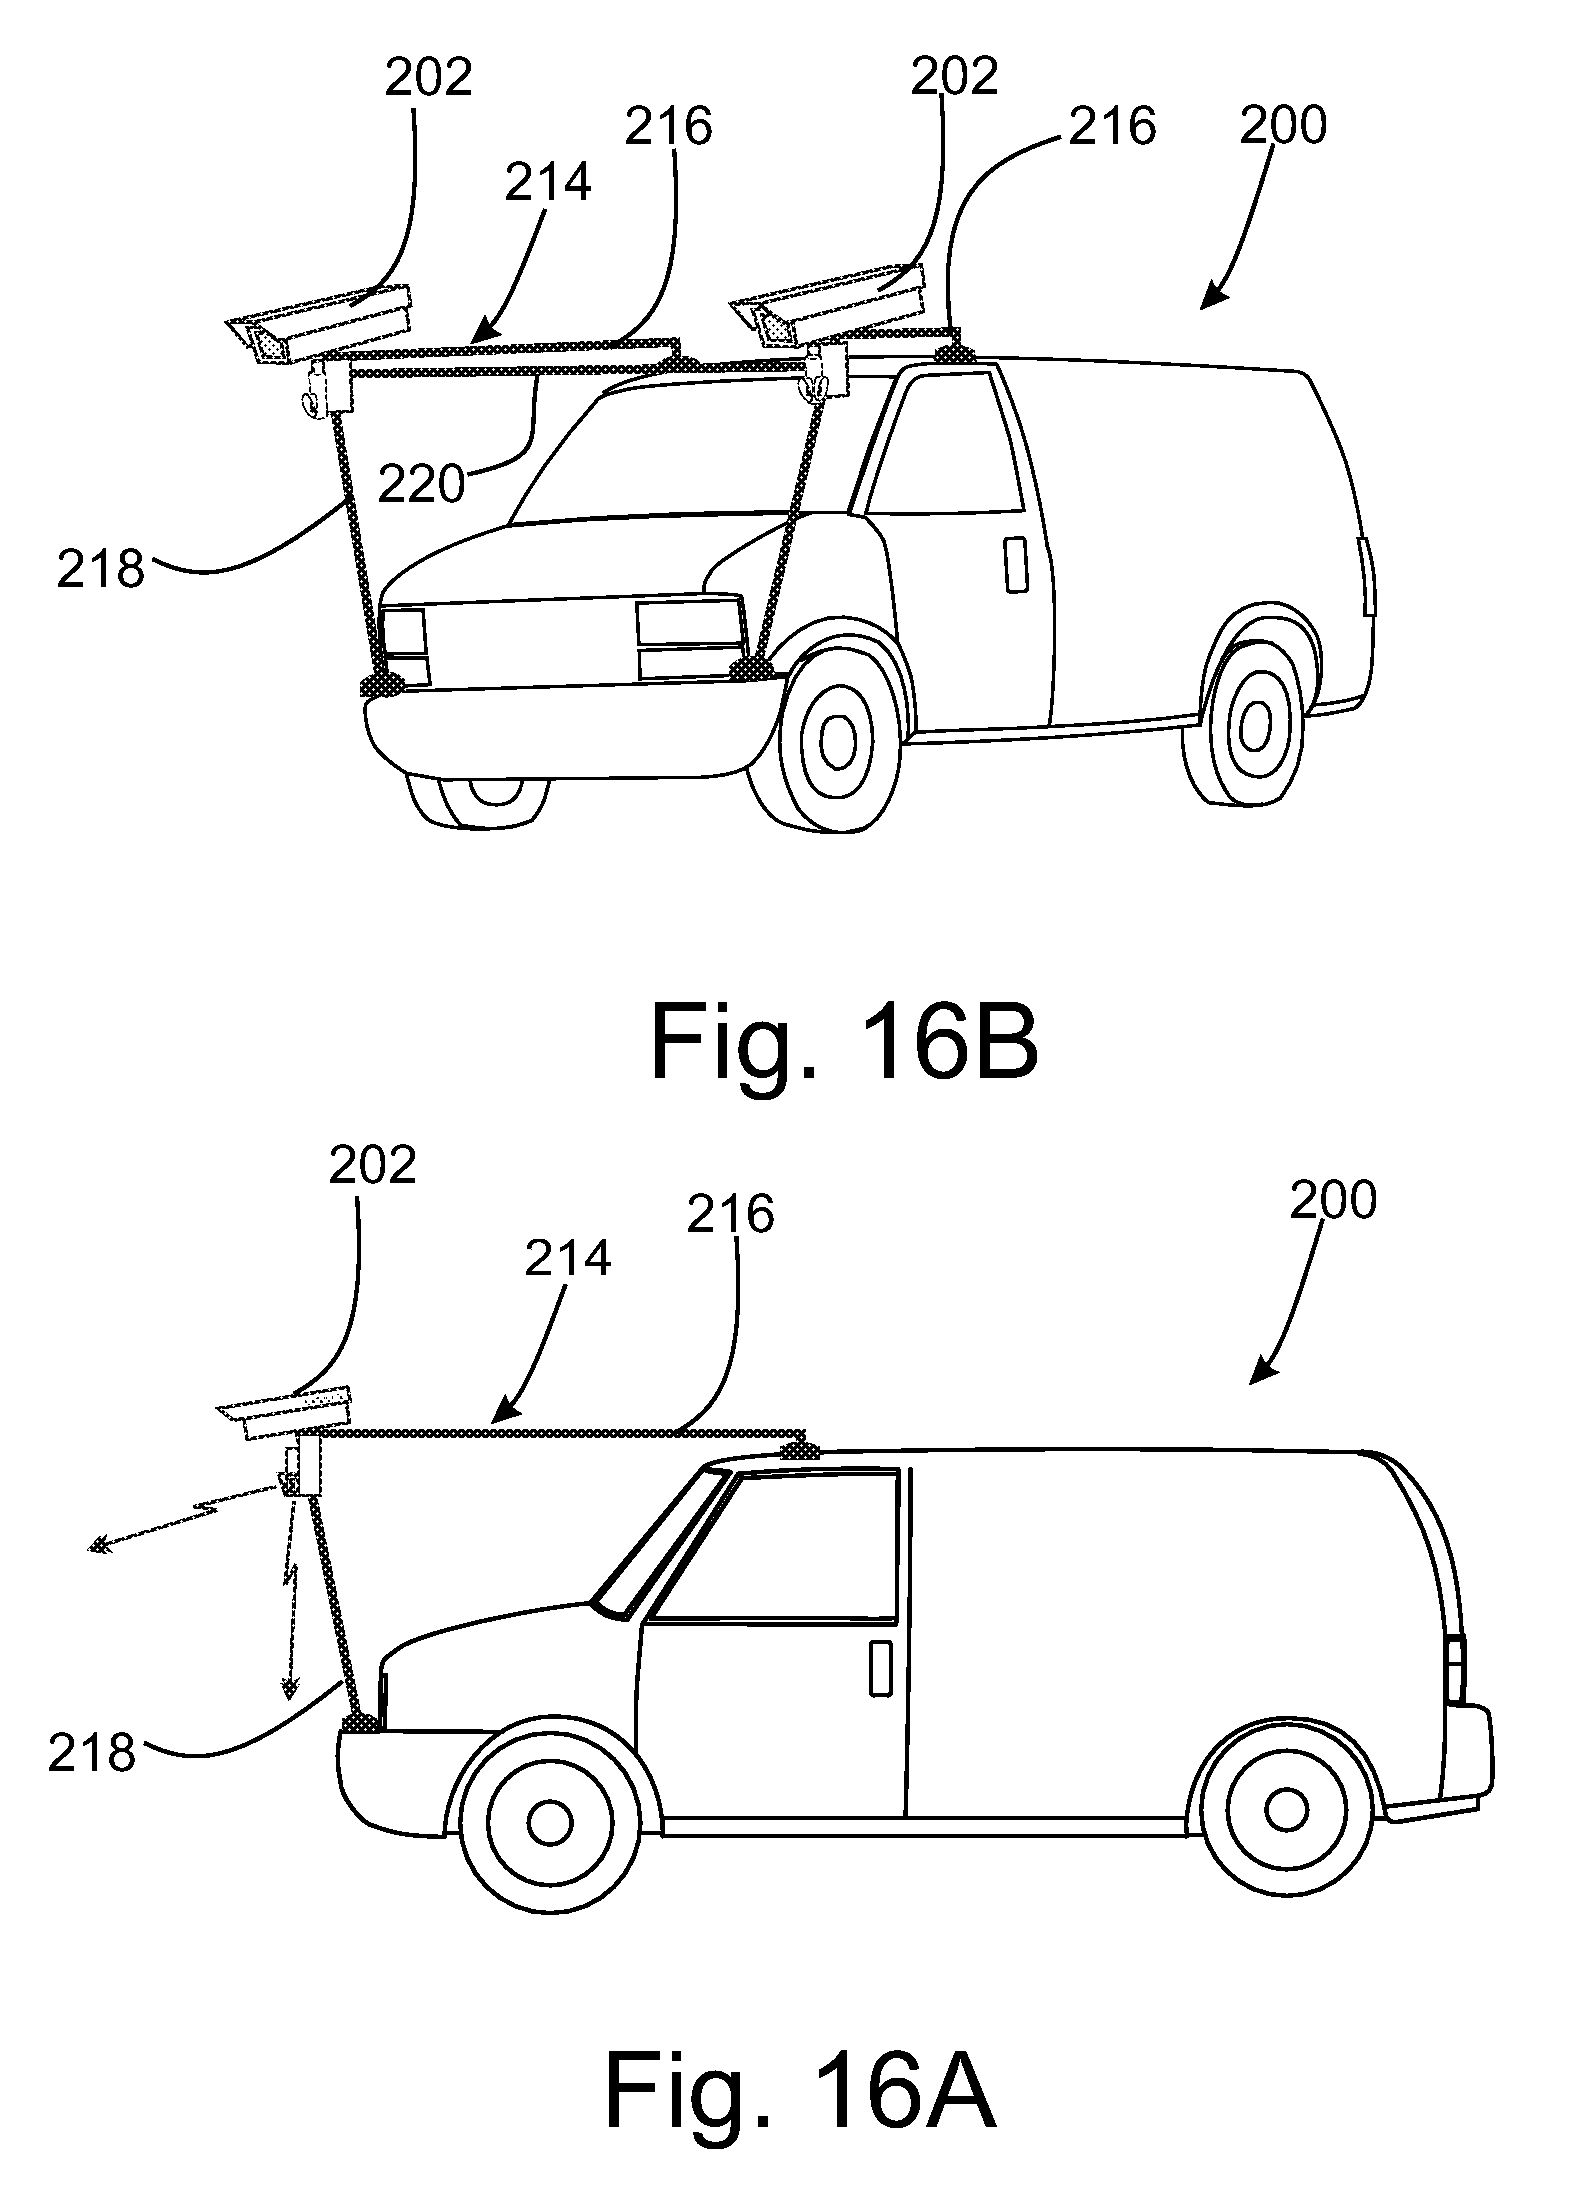 patent us 8 965 677 b2 08 Ford Fusion Electric Map petitions